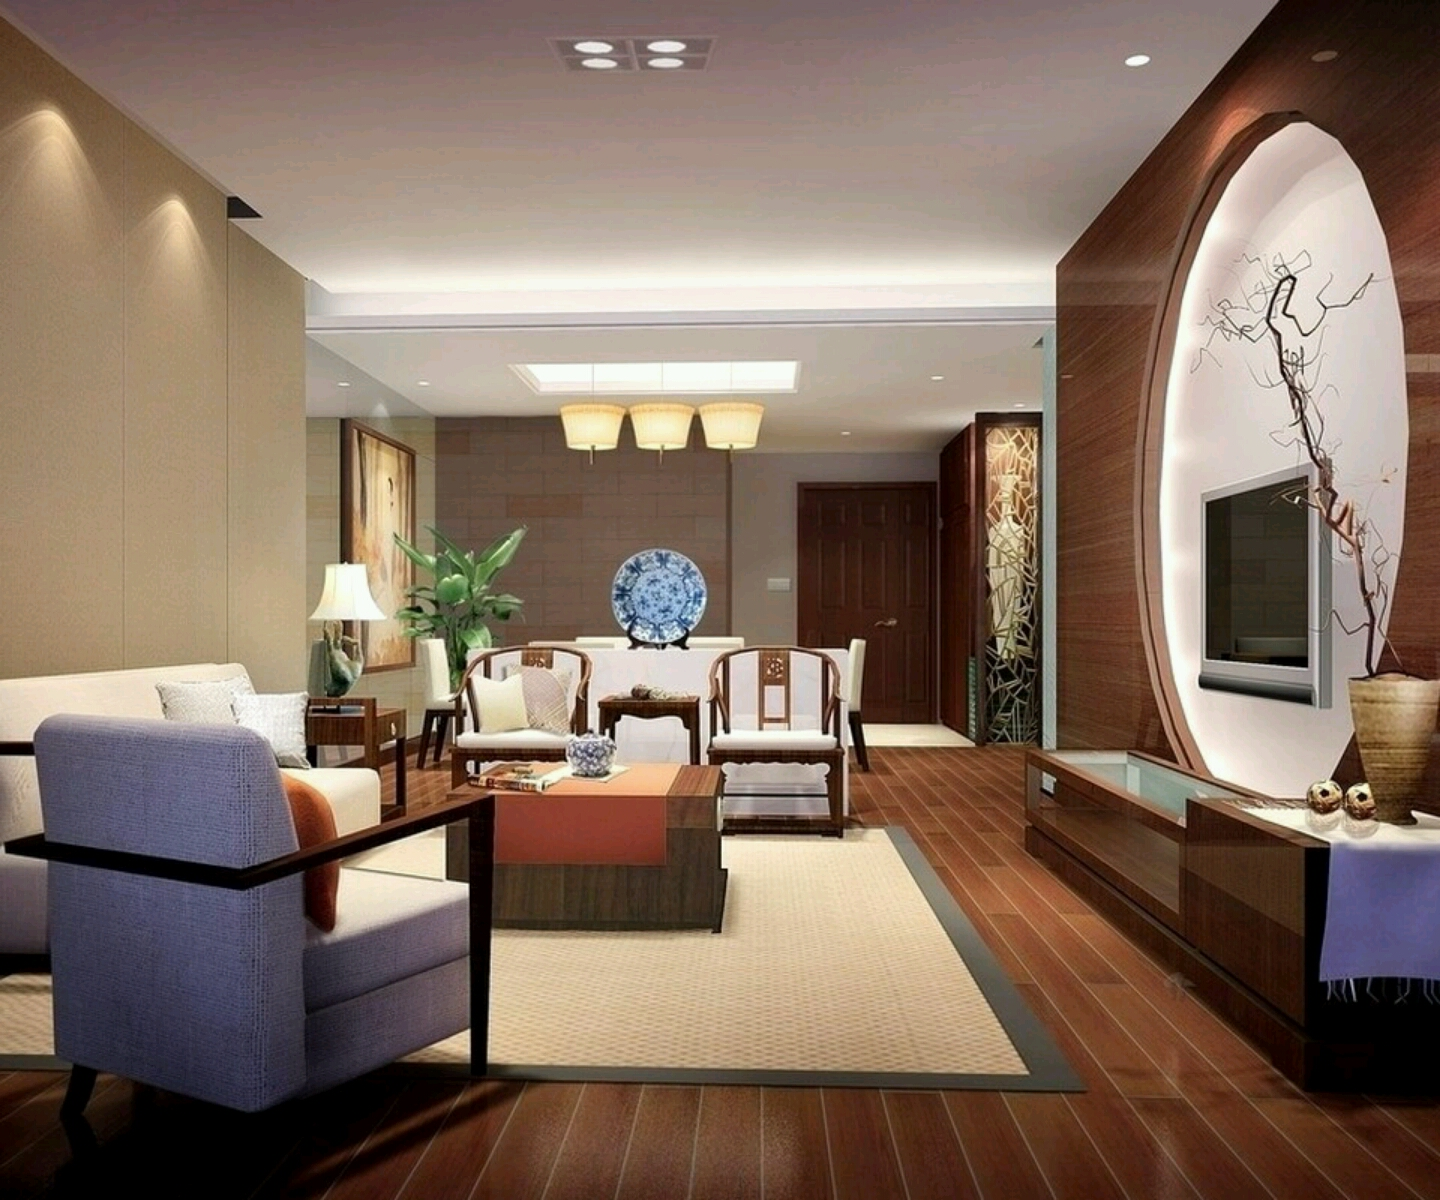 Luxury homes interior decoration living room designs ideas for Interior design ideas living room small